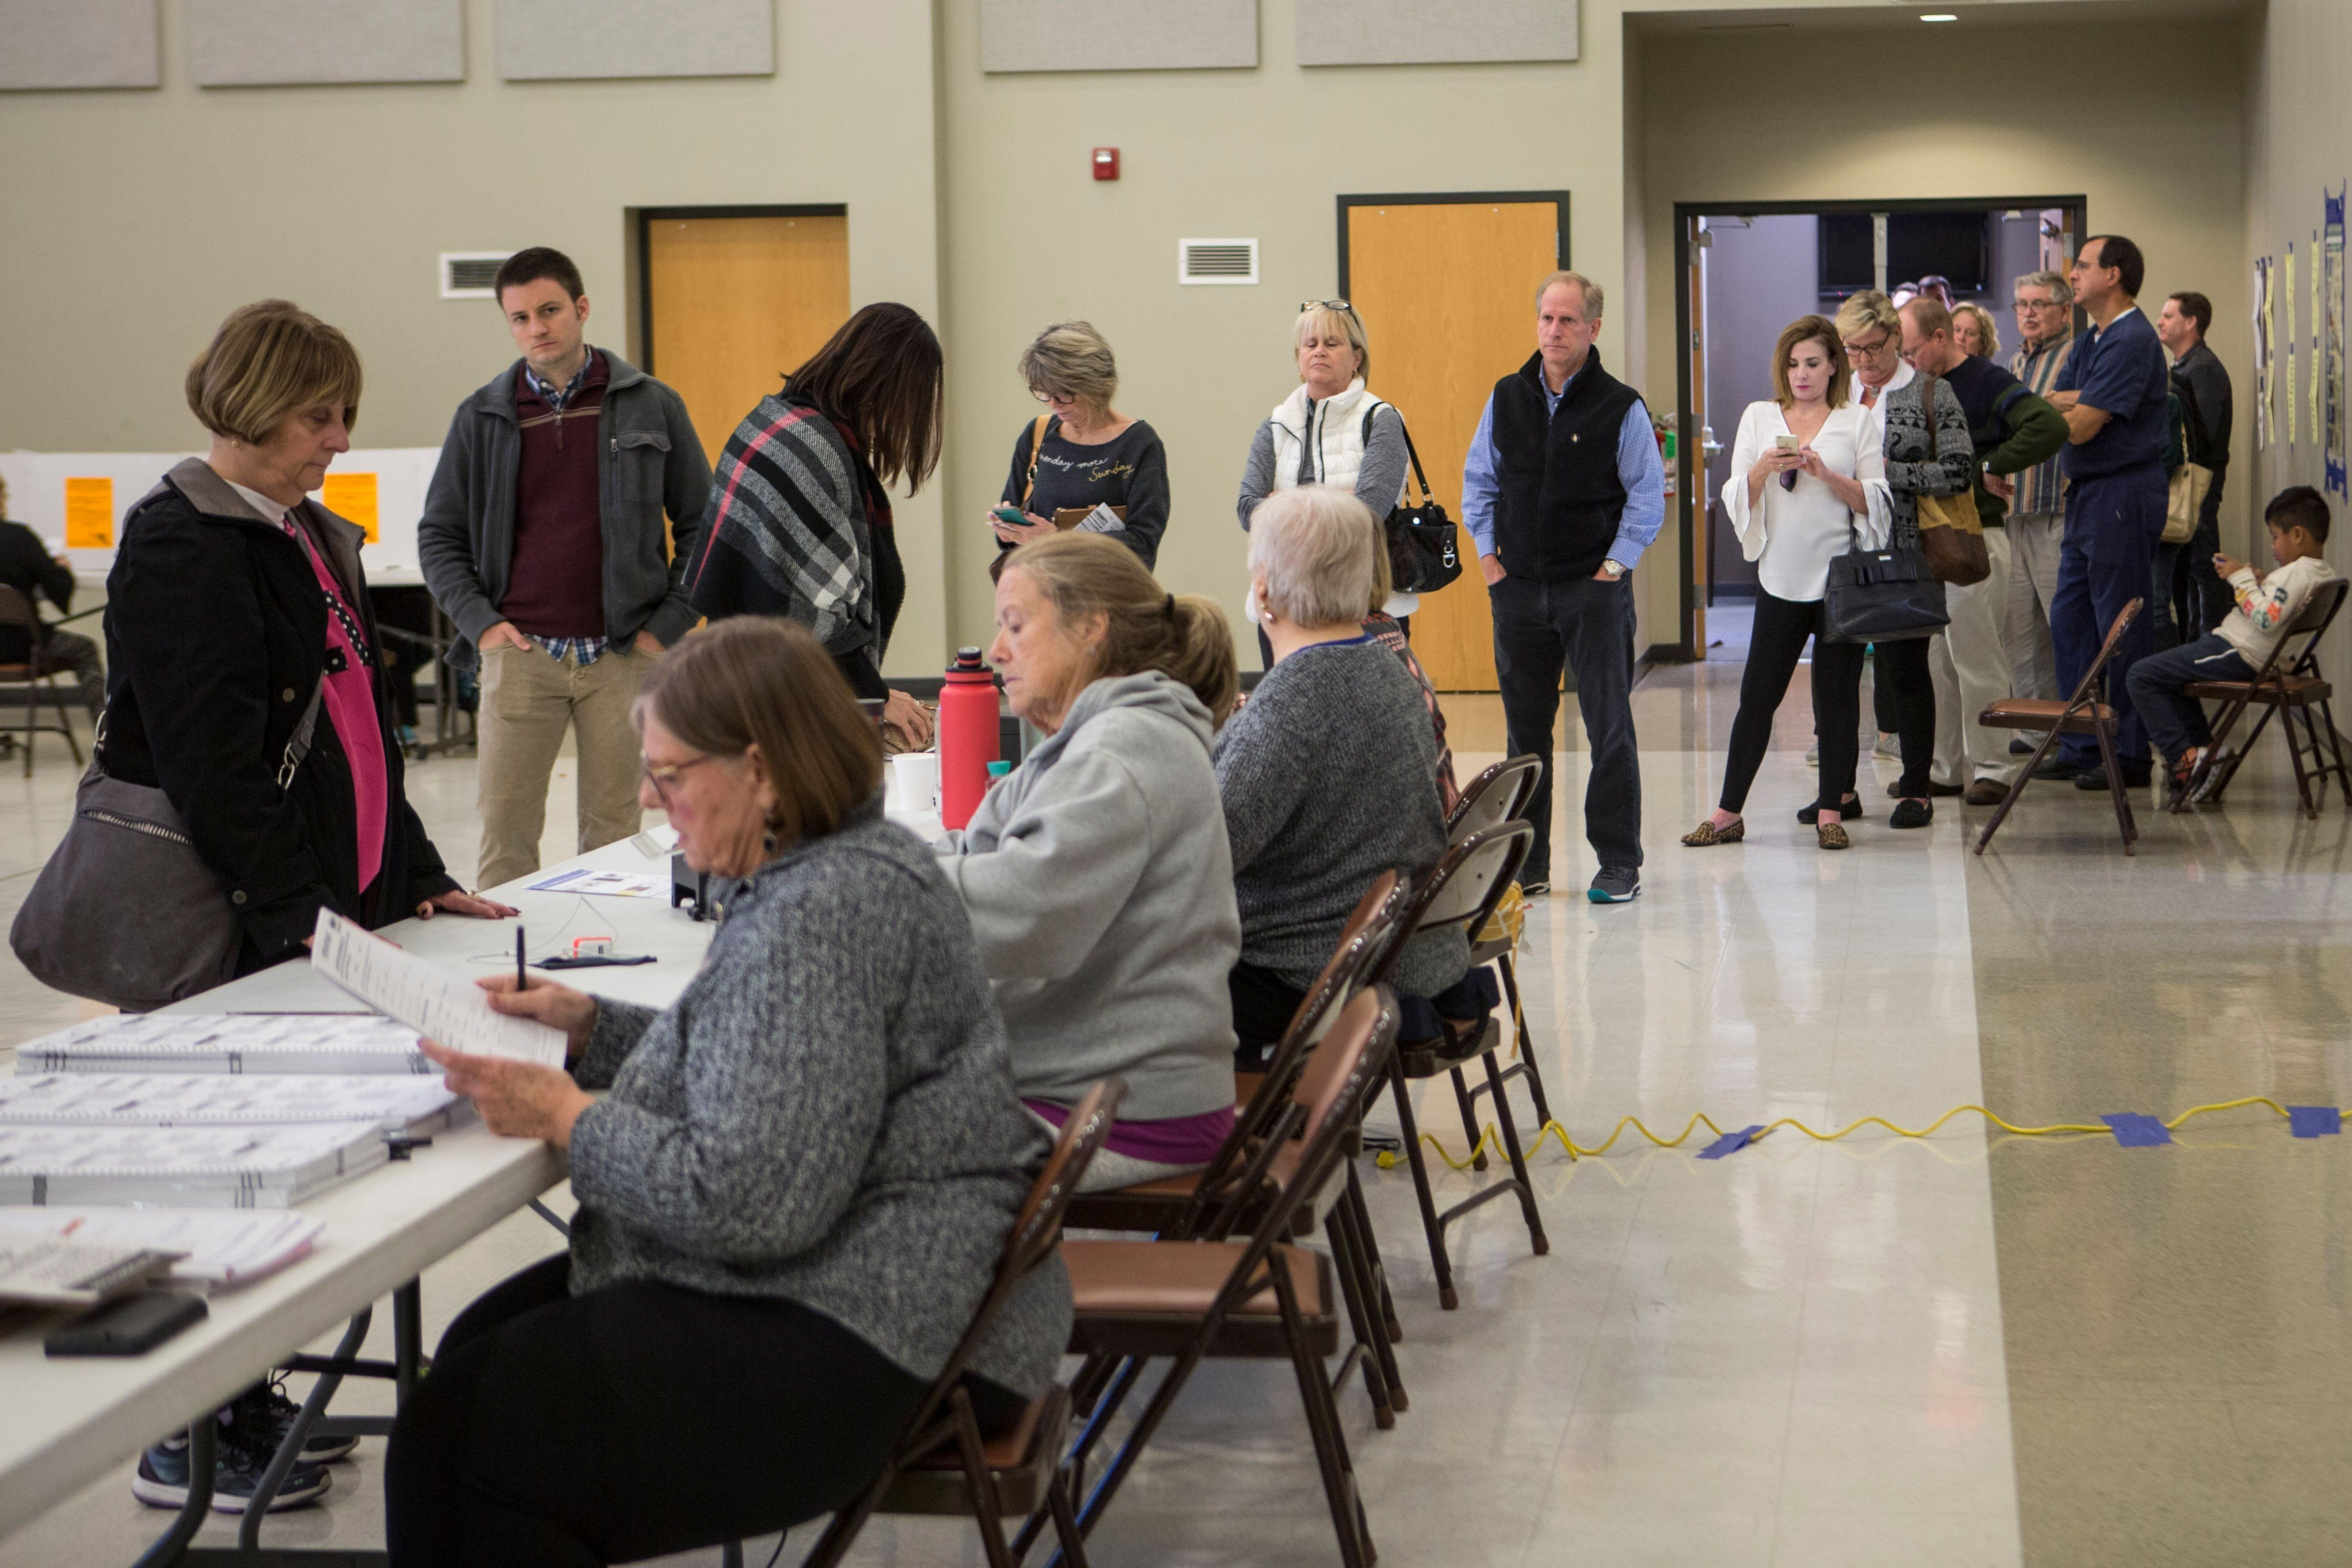 People wait in line to vote at McKnight Crossings Church of Christ in St. Louis on Tuesday, Nov. 6, 2018. (Johanna Huckeba/St. Louis Post-Dispatch via AP)